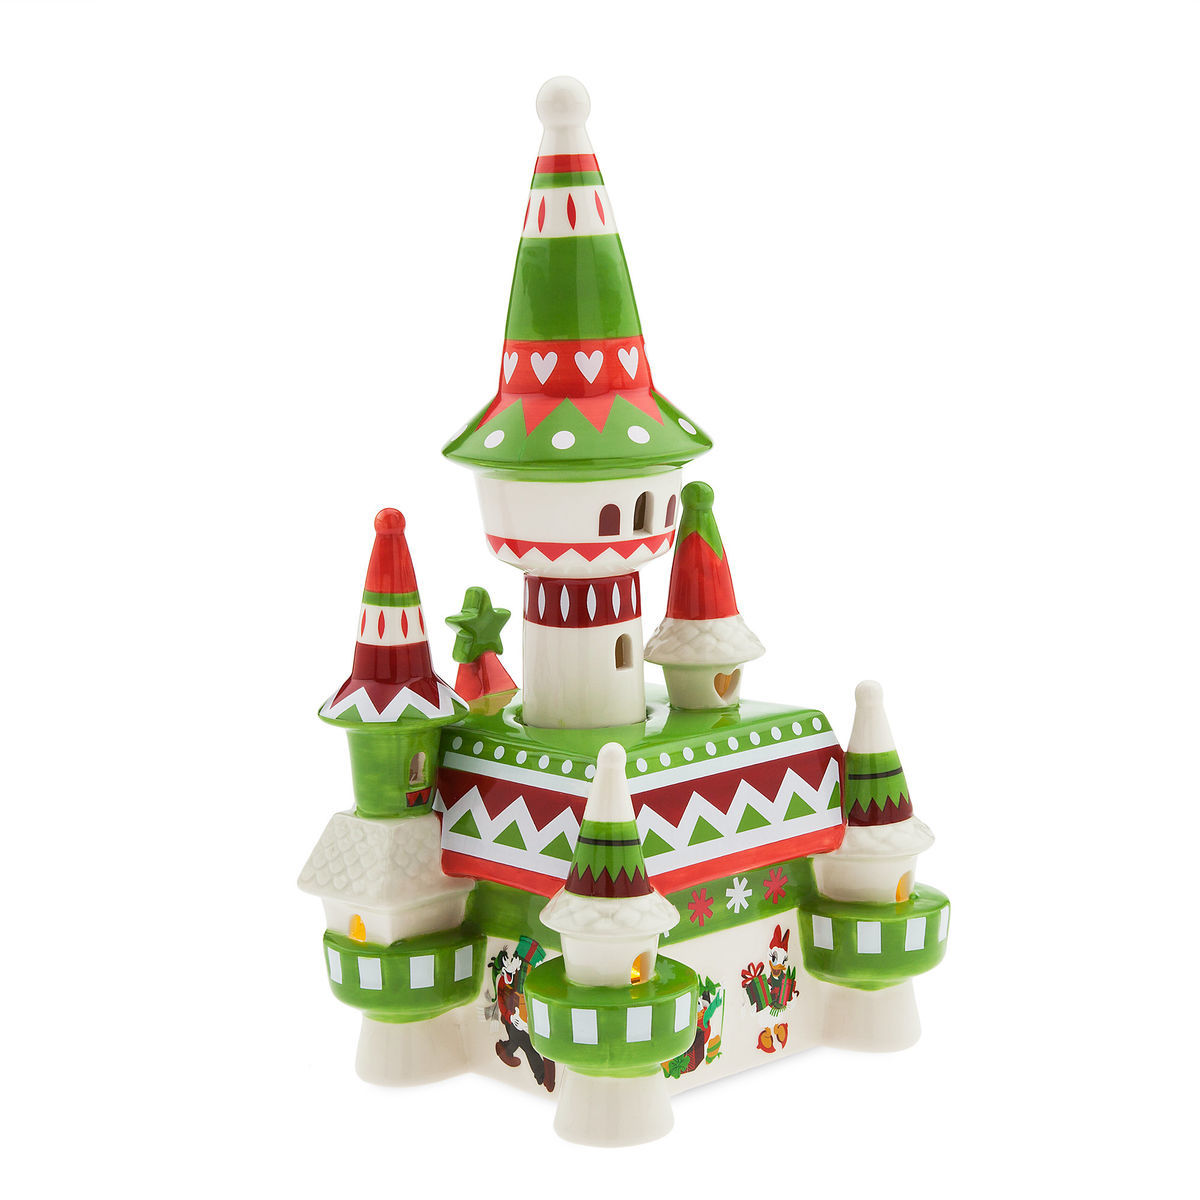 Product Image of Fantasyland Castle Nordic Winter Light-Up Figurine # 4